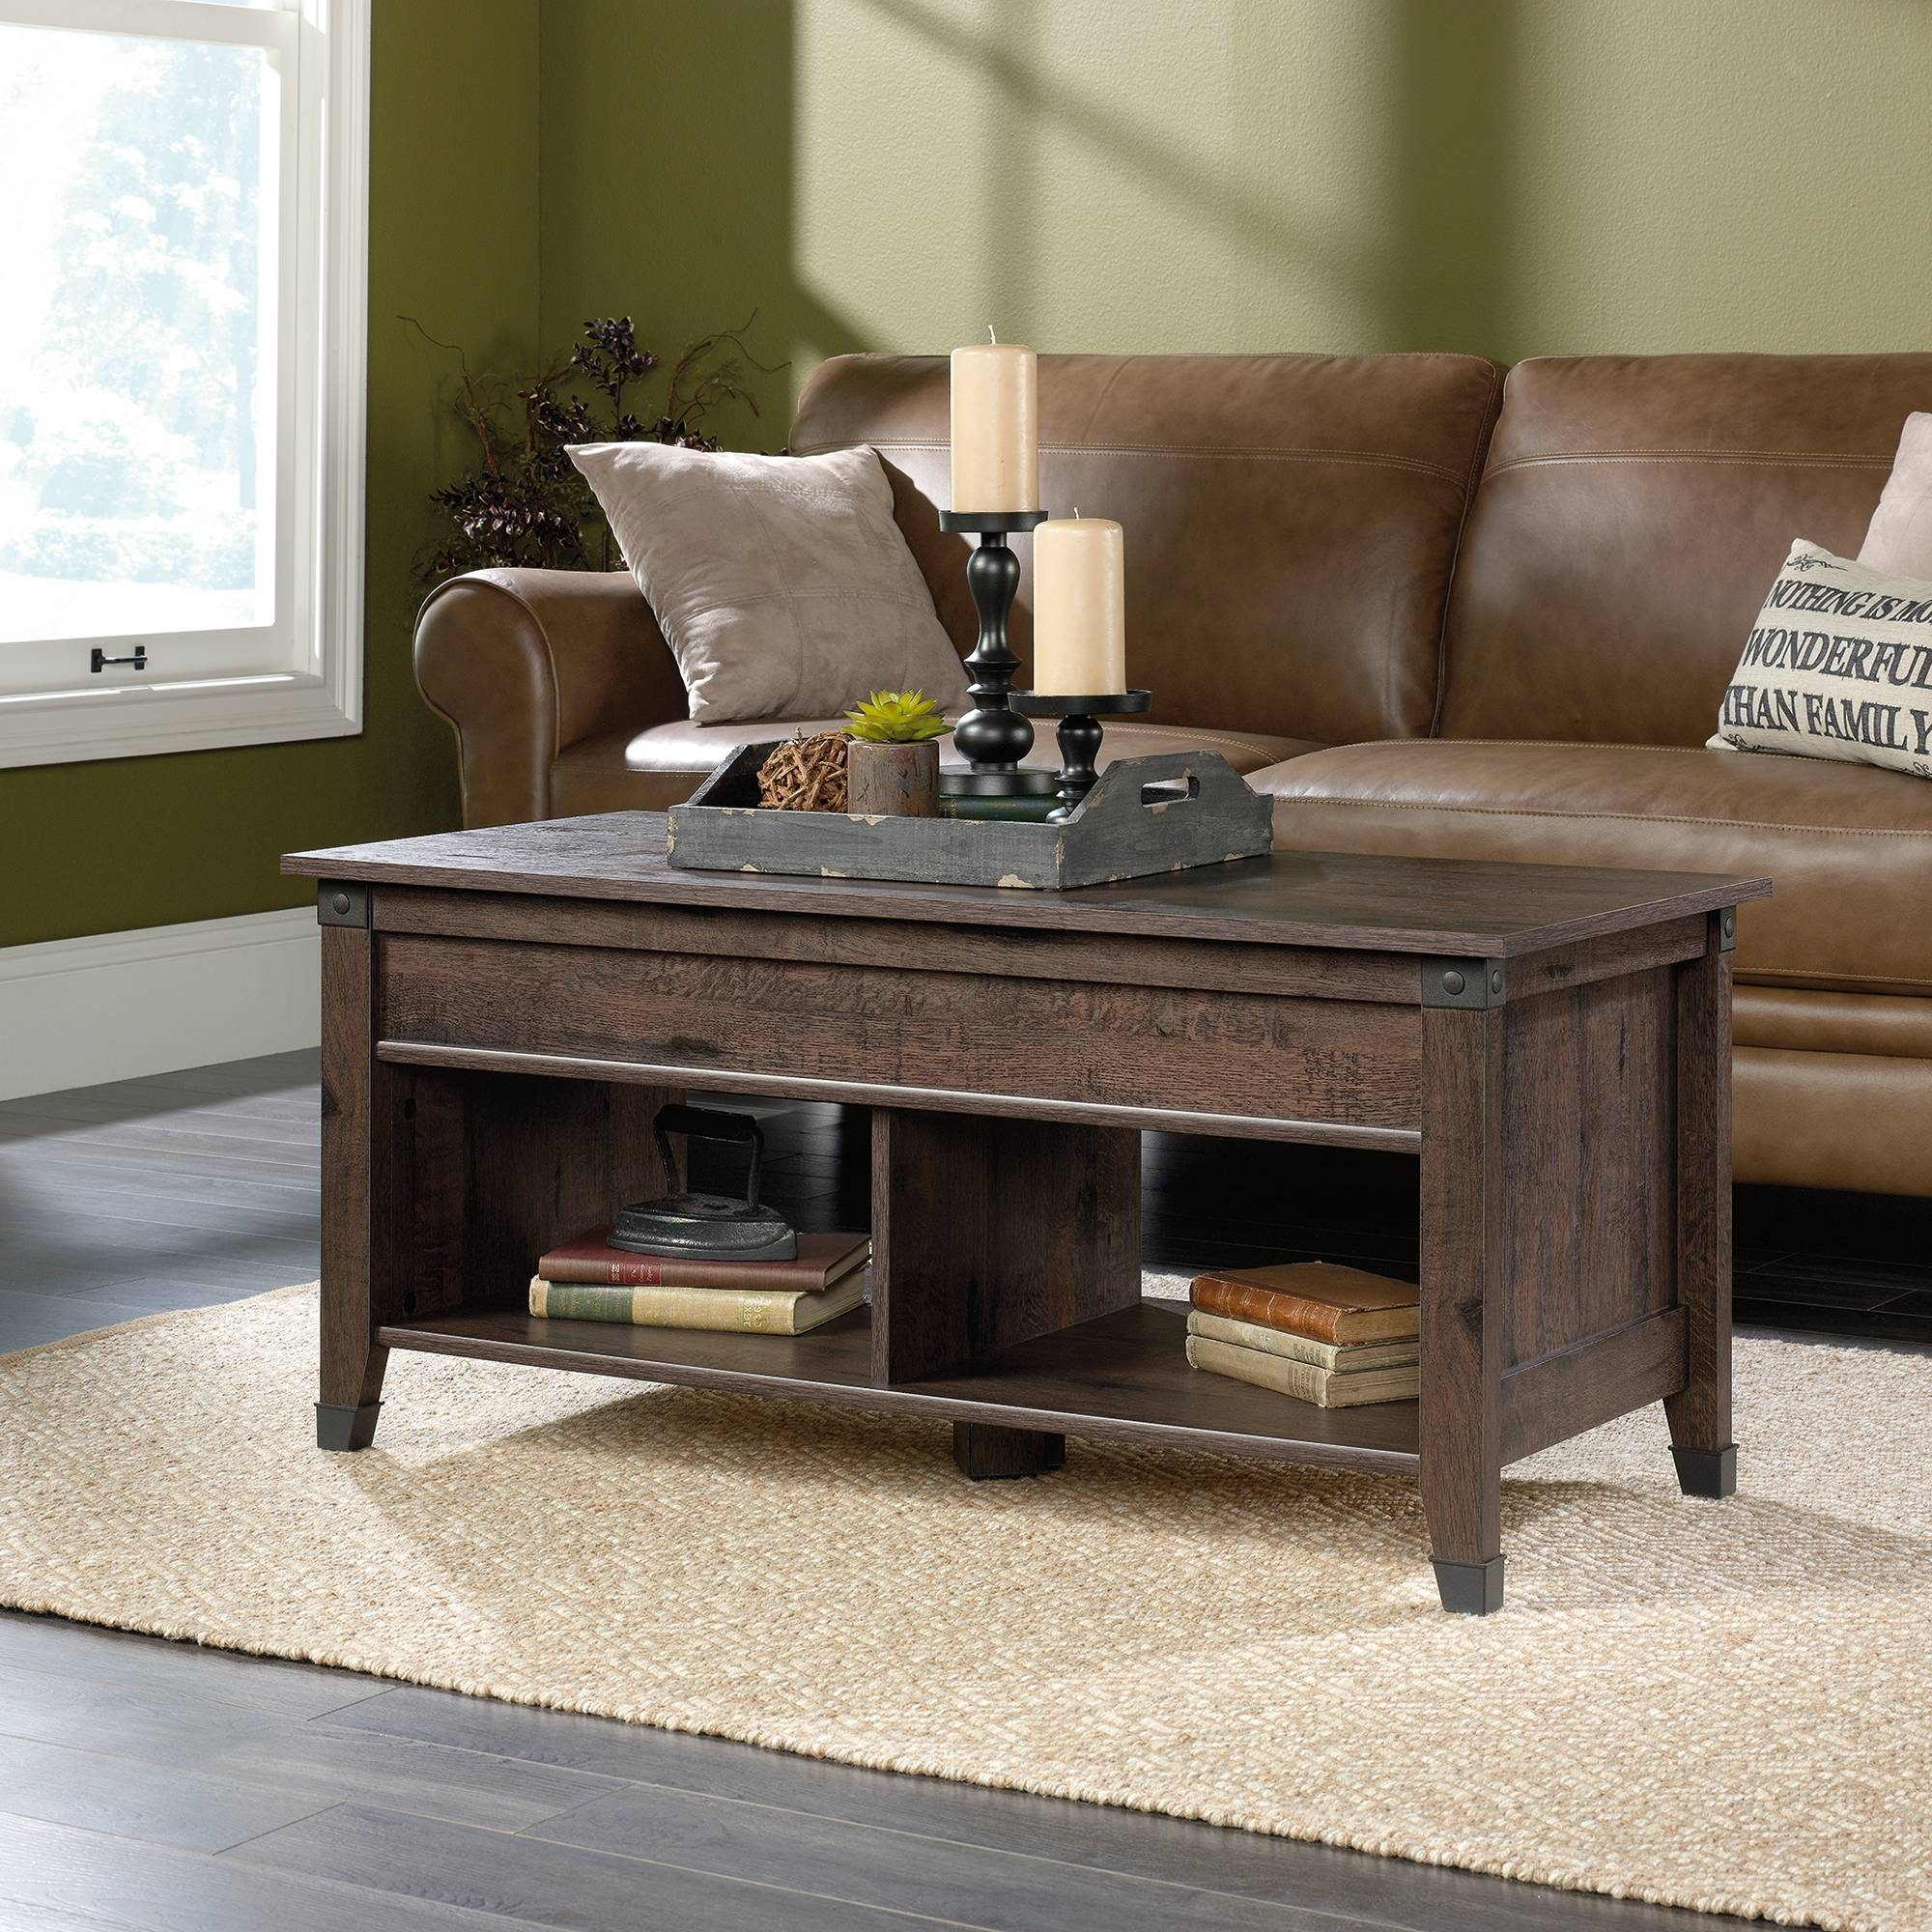 Carson Forge | Lift-Top Coffee Table | 420421 | Sauder within Coffee Tables Extendable Top (Image 2 of 30)